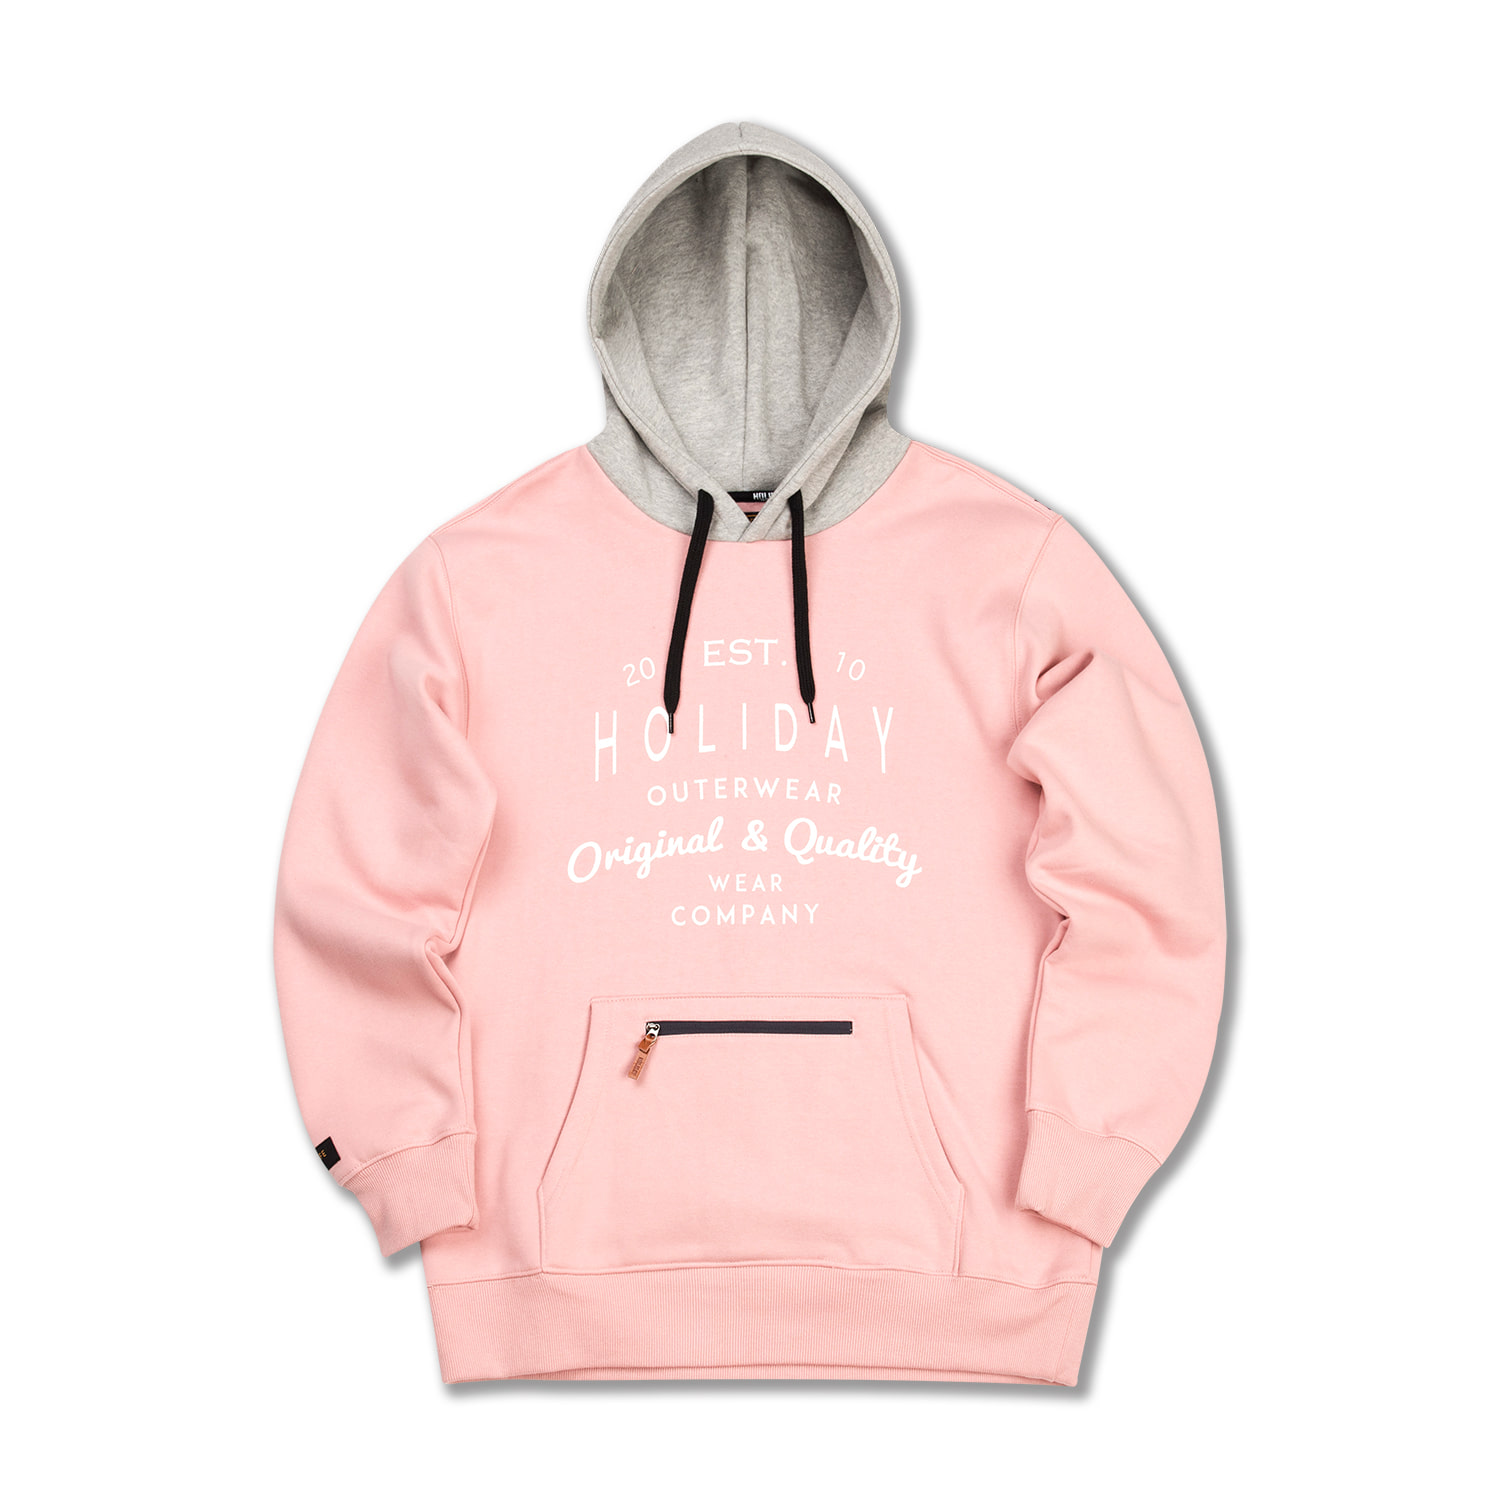 BLOOM hoodie - indy pinkHOLIDAY OUTERWEAR